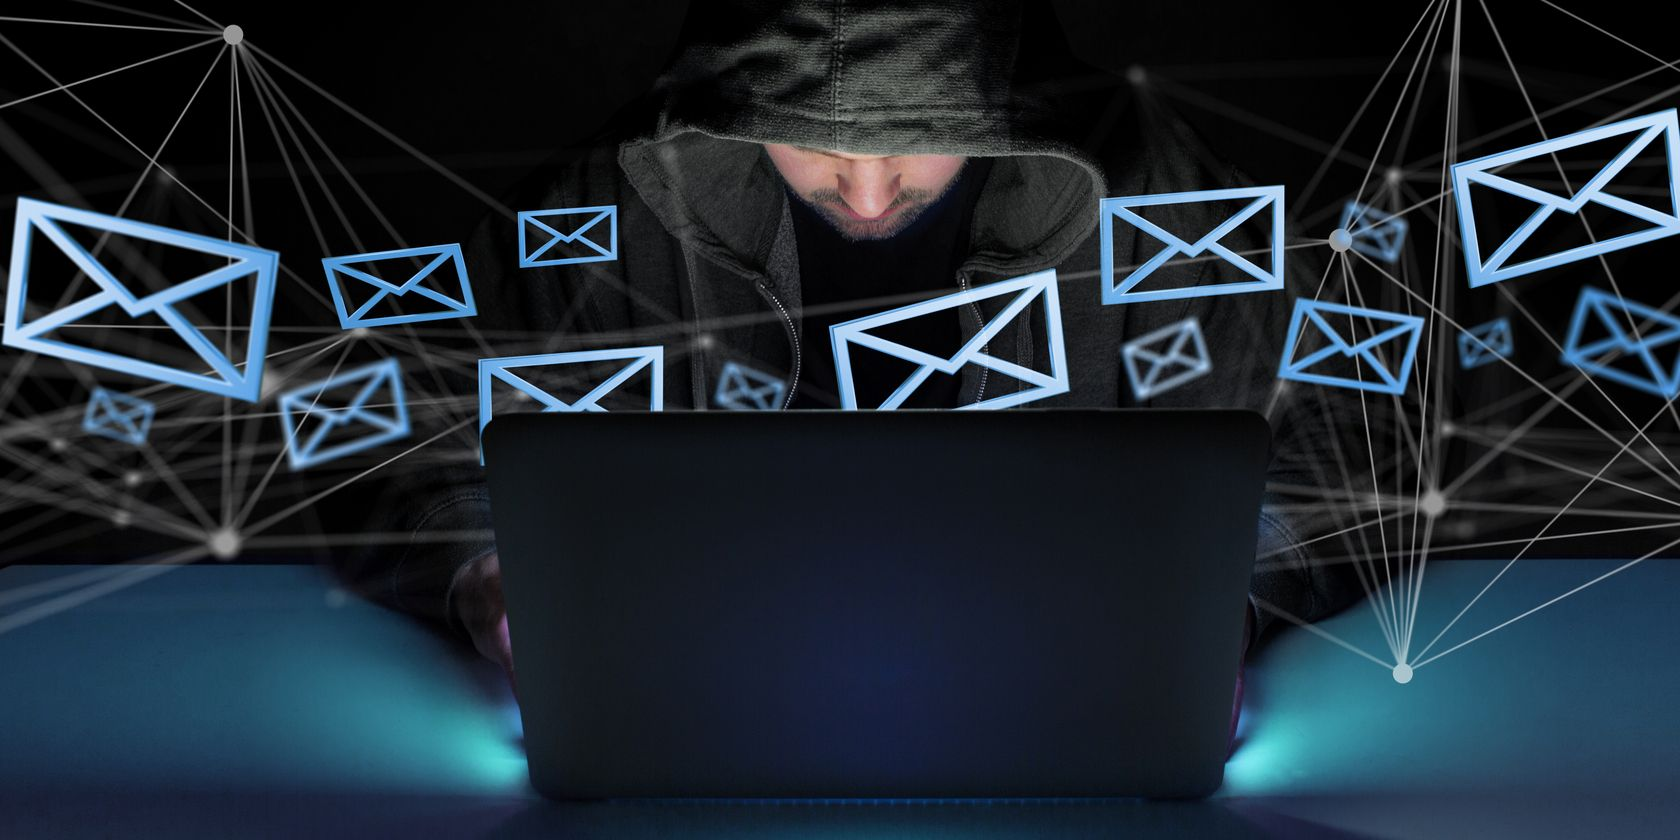 85 Percent of Microsoft 365 Organizations Suffer Email Leaks, Says Research